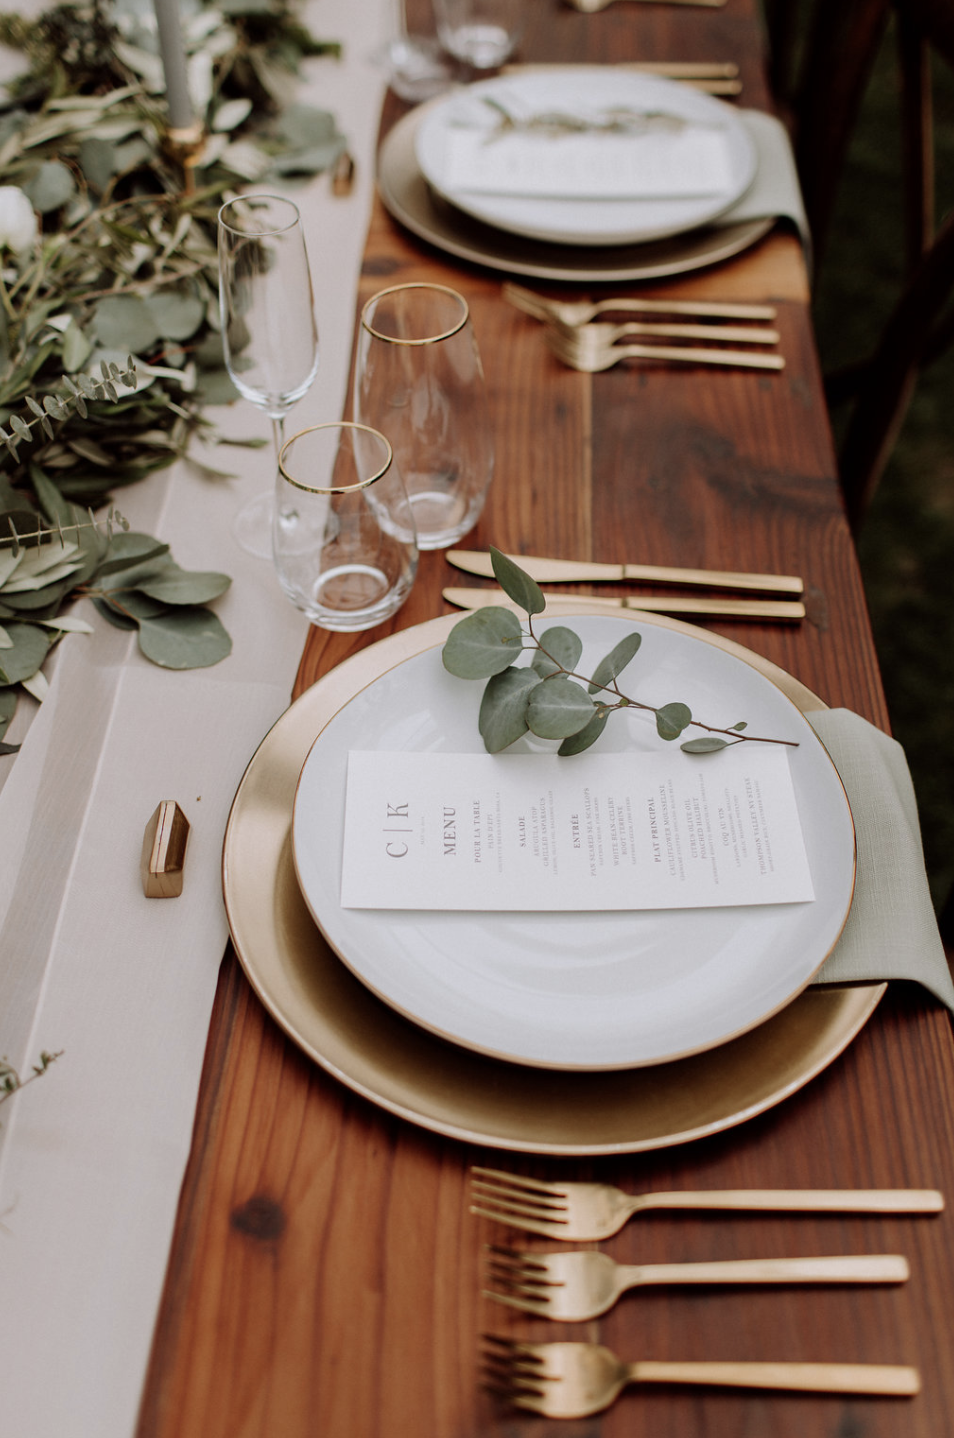 5 Reasons Why Chalet View Lodge Is Every Outdoorsy Couple's Dream Venue #weddingreception